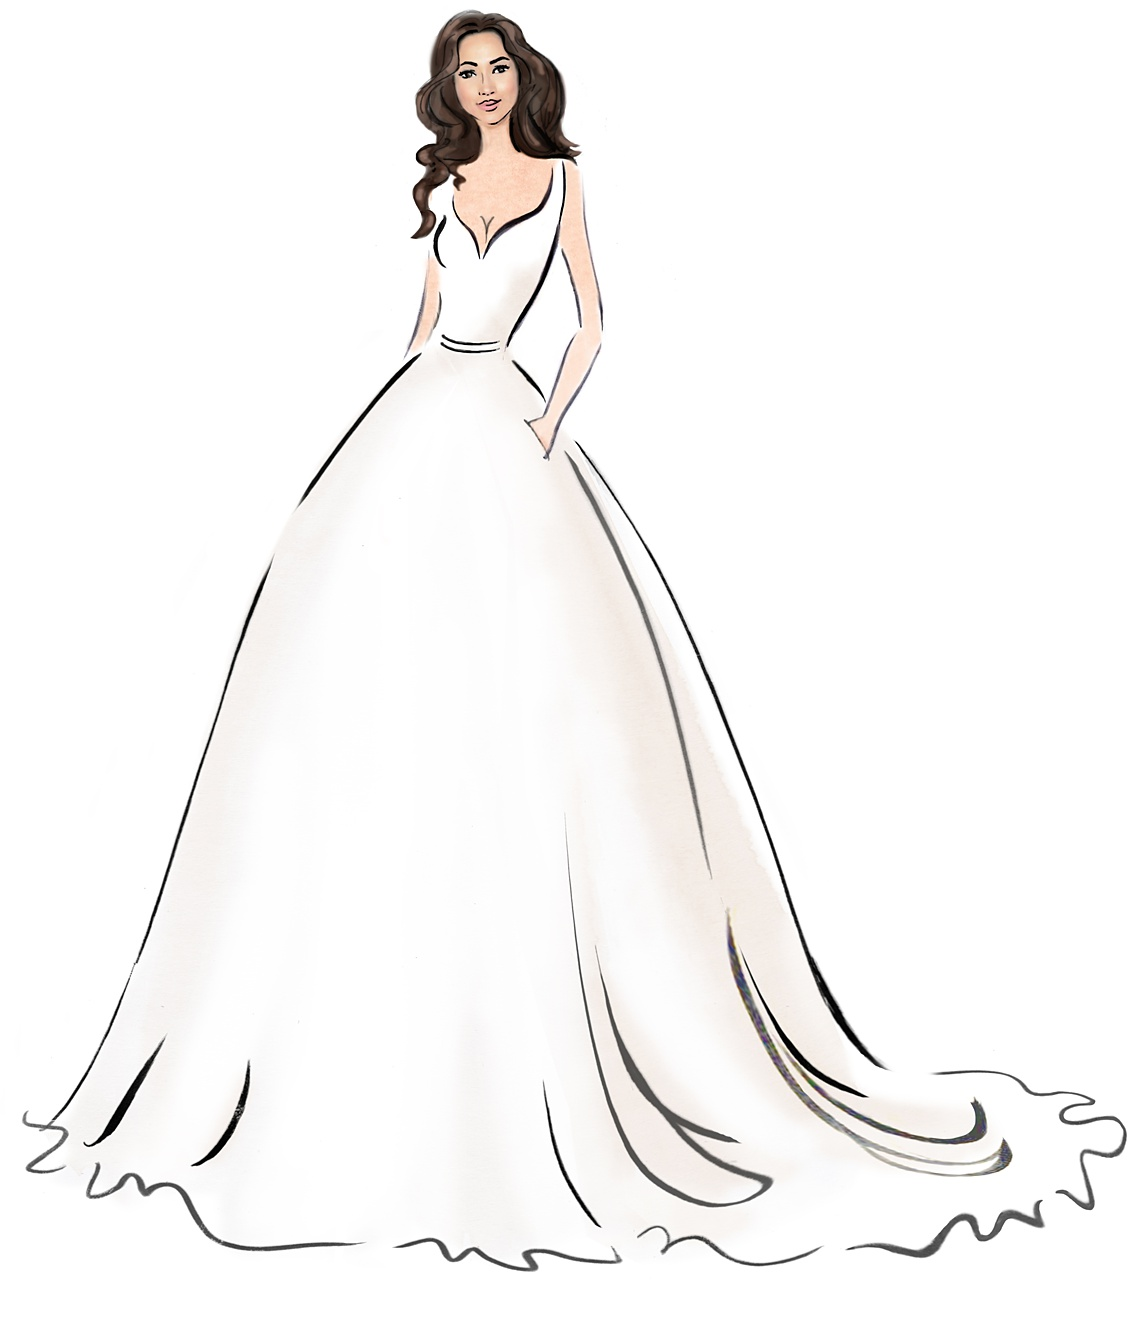 From Sketch To Dress: A Q&A With Master Bridal Designer